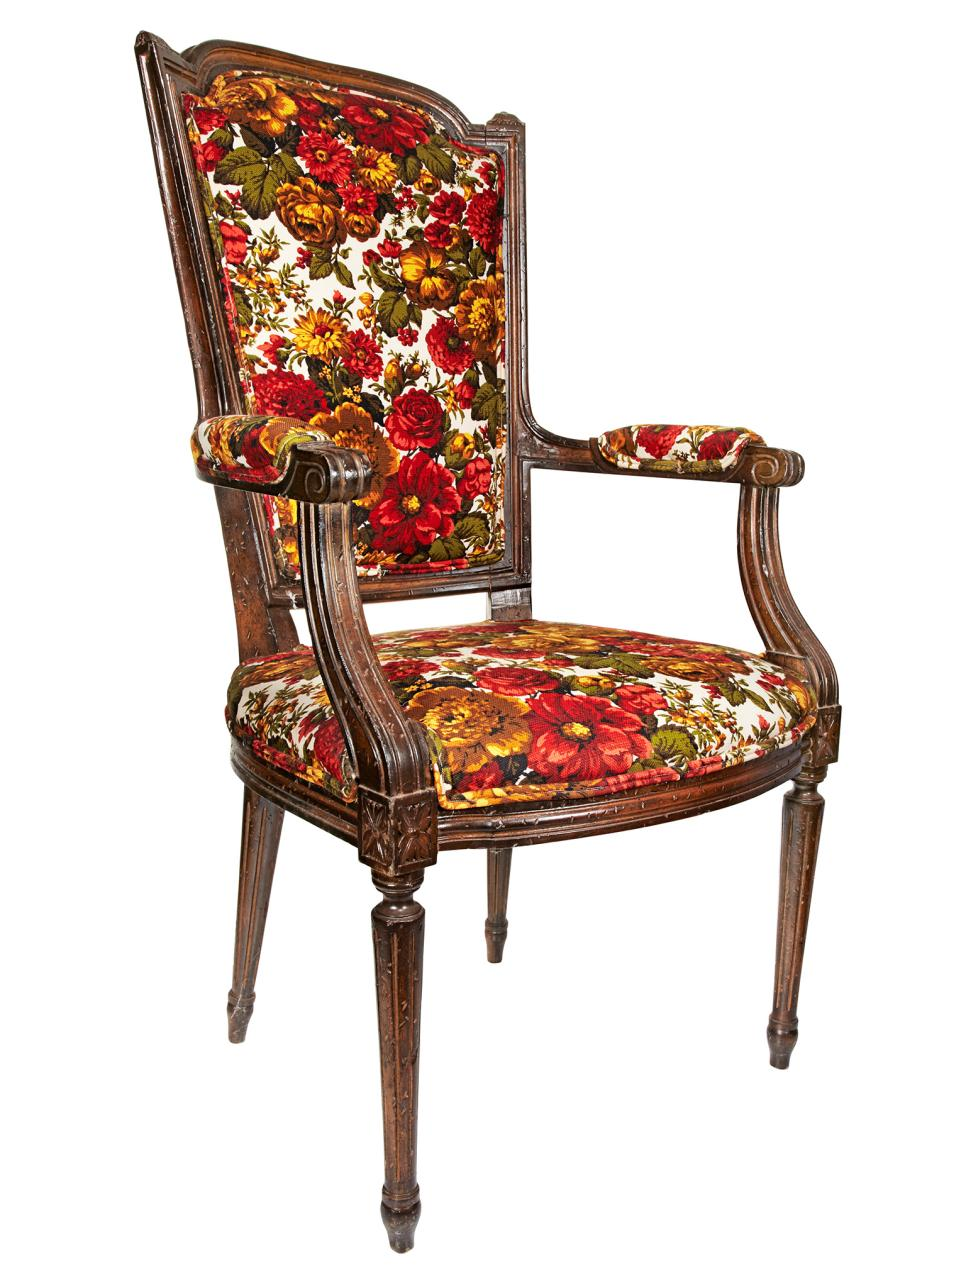 Rehabbed and Reupholstered Chairs  HGTV